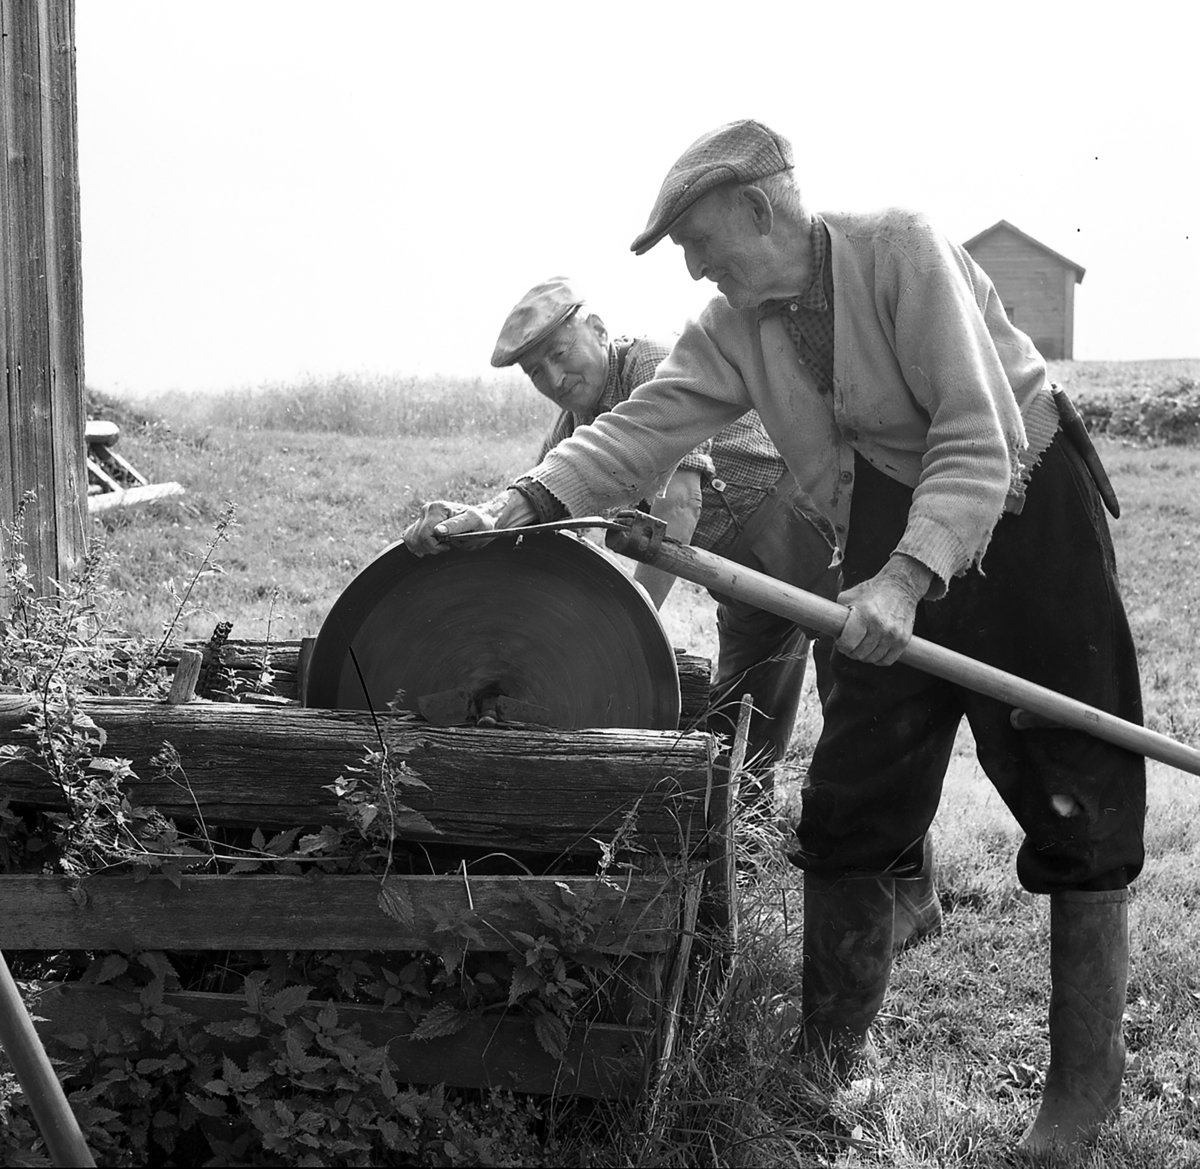 Otto Horndal sharpens his scythe on the old grindstone. The name of the man pulling the crank handle is not known. The location is Horndalen, Elverum, Hedmark, Norway - and the year is 1958. If you ever visit a Norwegian farm, ask to be shown where the grindstone is. A surprisingly large number of farms would still have the grindstone tucked away somewhere. | Photo: Dagfinn Grønoset Glomdalsmuseet - digitaltmuseum.no DGS.2971 - cc by-sa.